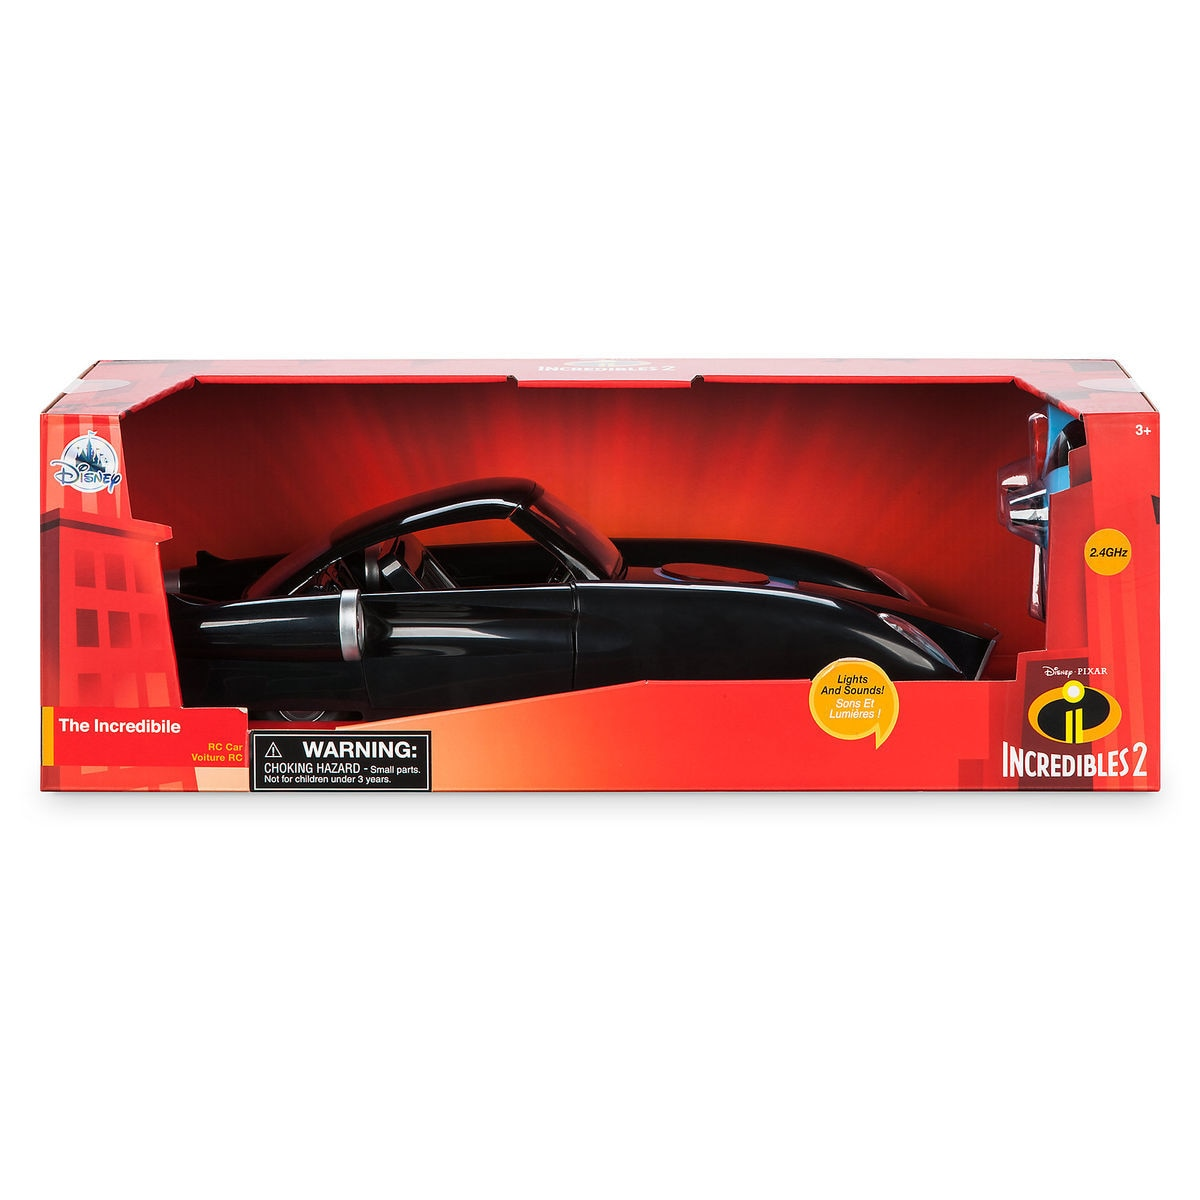 The Incredible Remote Control Vehicle Incredibles 2 Shopdisney